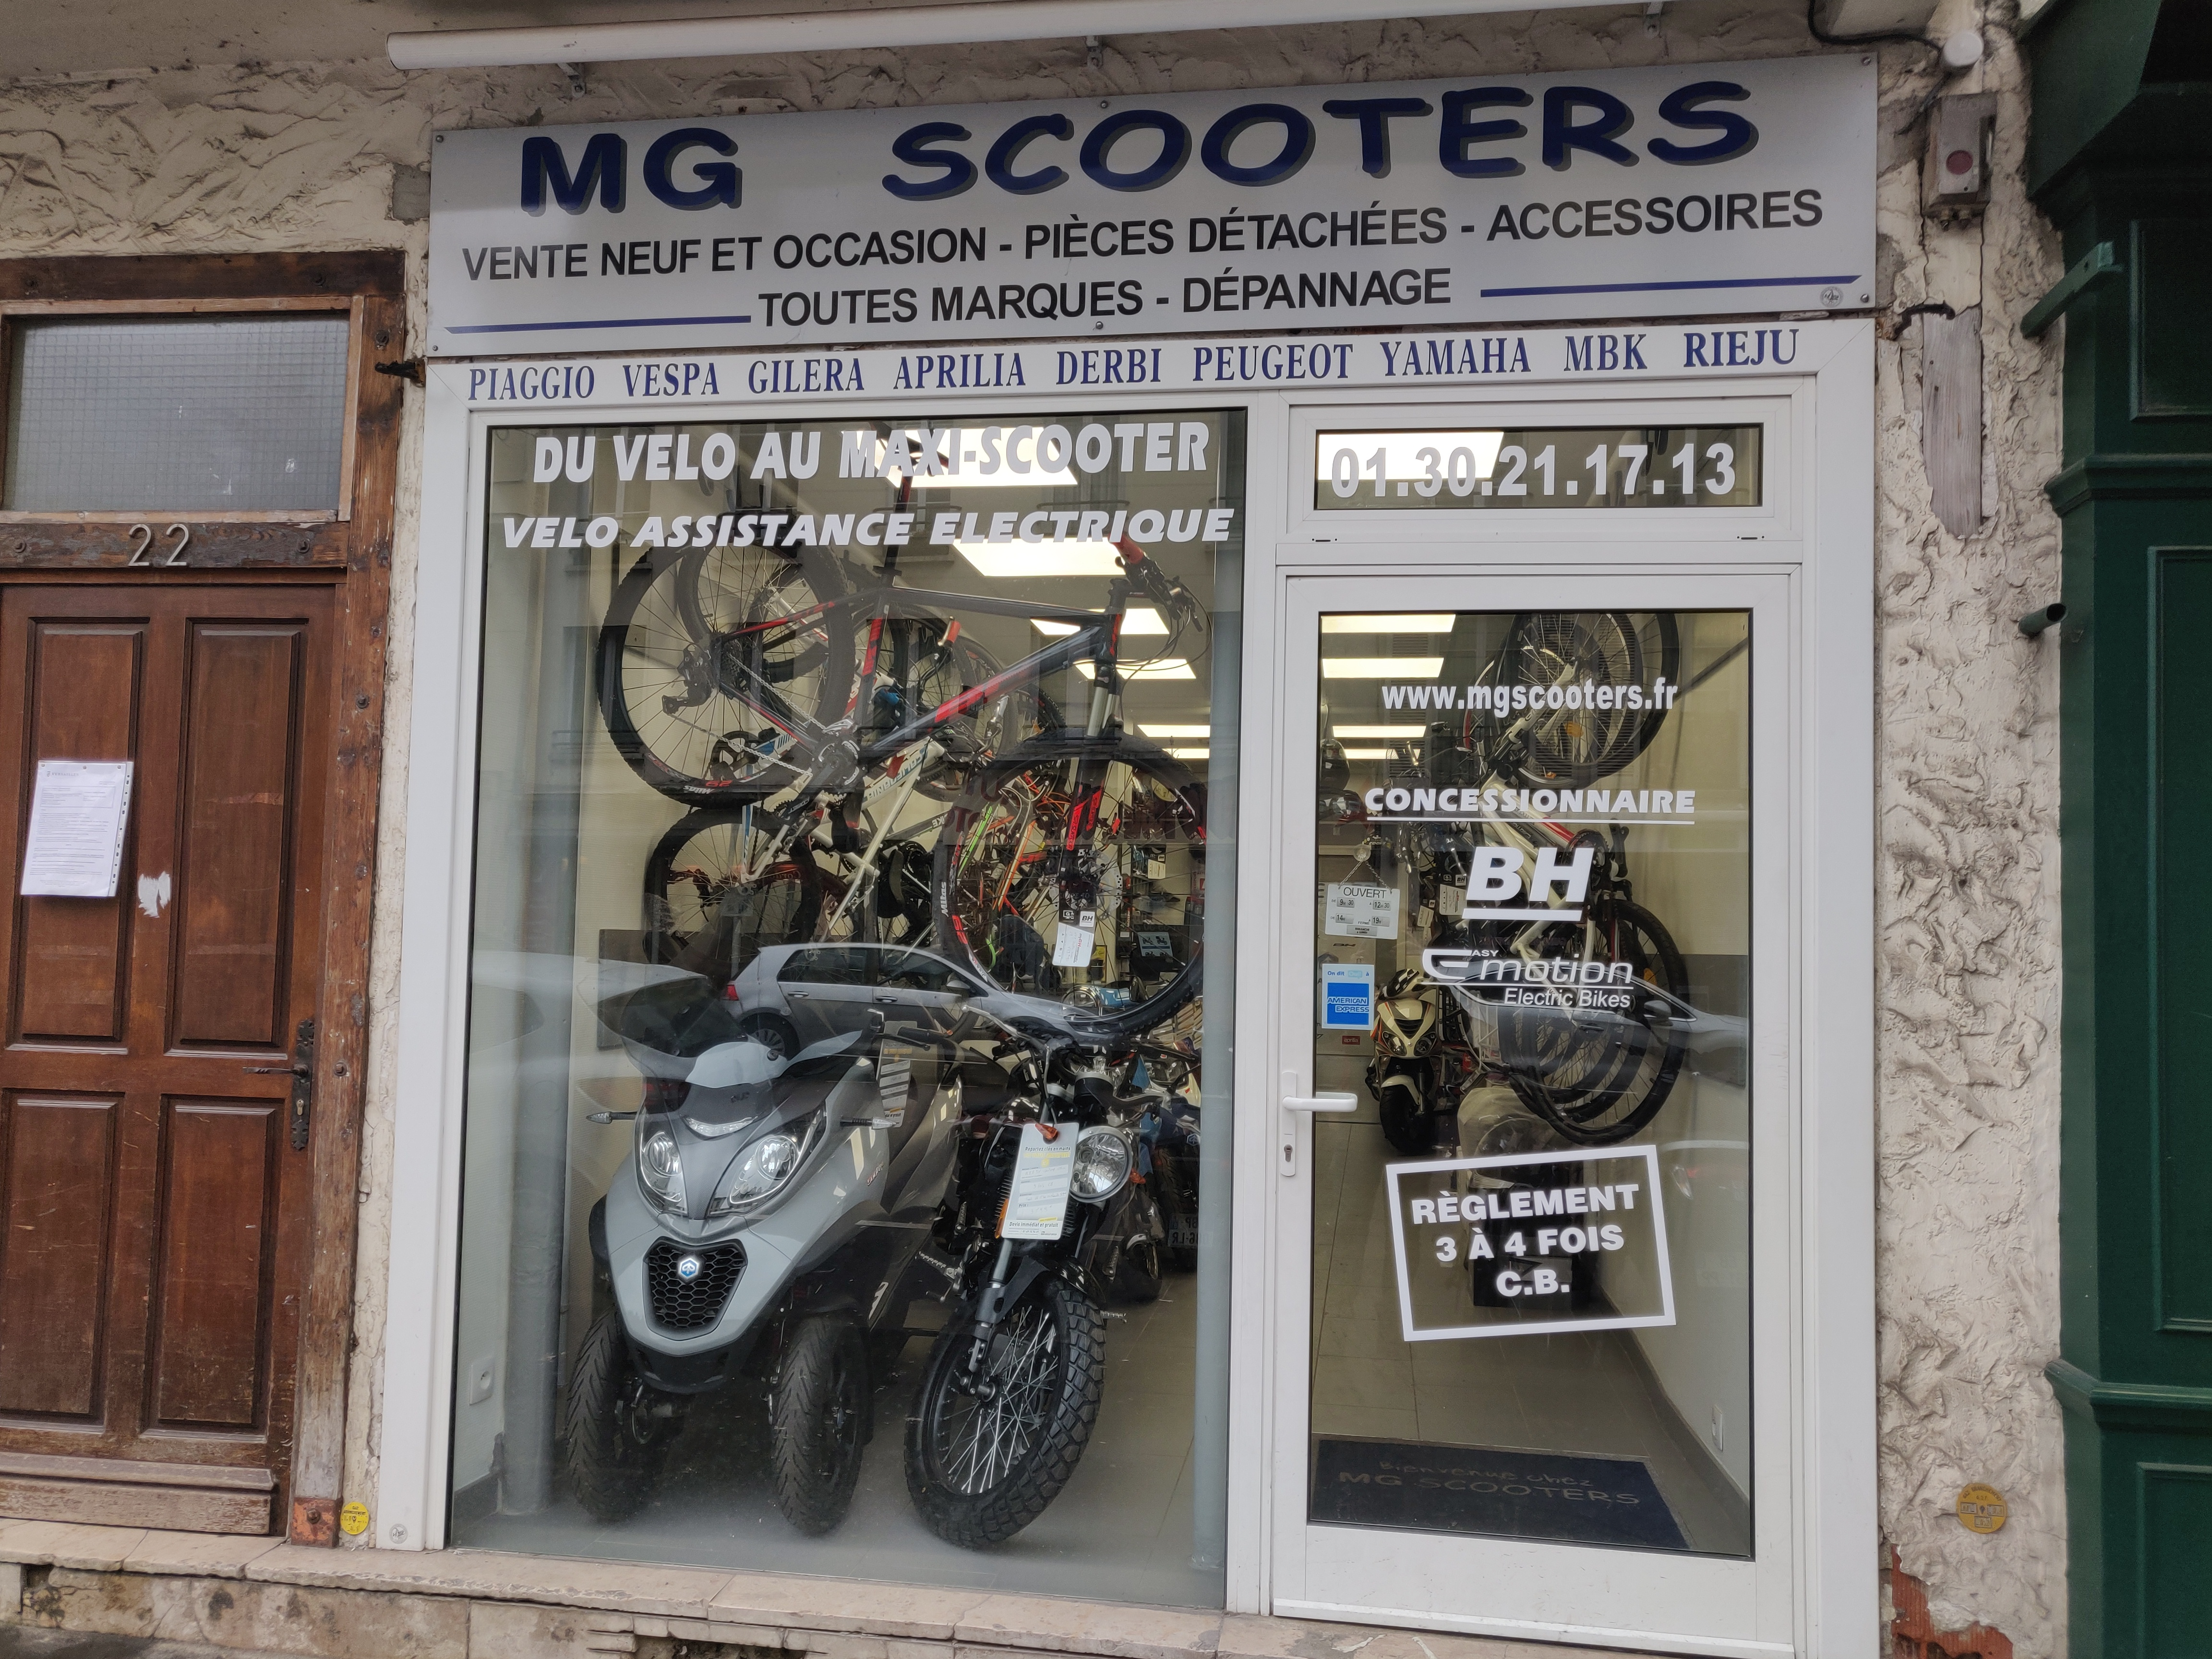 MG SCOOTERS